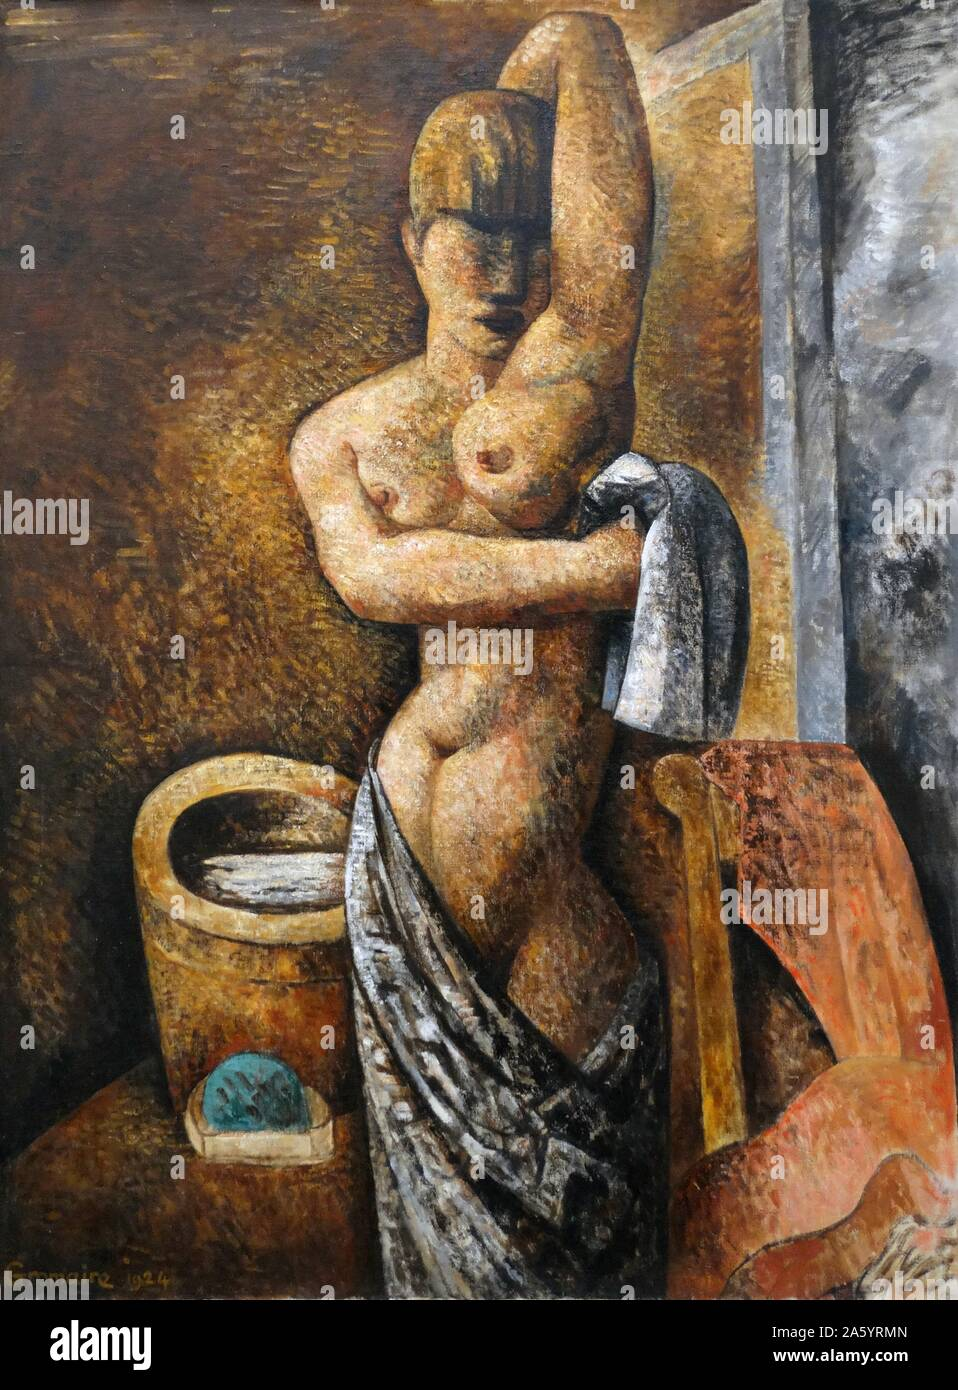 La Toilette 1924 by Marcel Gromaire (July 24, 1892 ñ April 11, 1971) was a French painter. He painted many works on social subjects, and is often associated with Social Realism Stock Photo